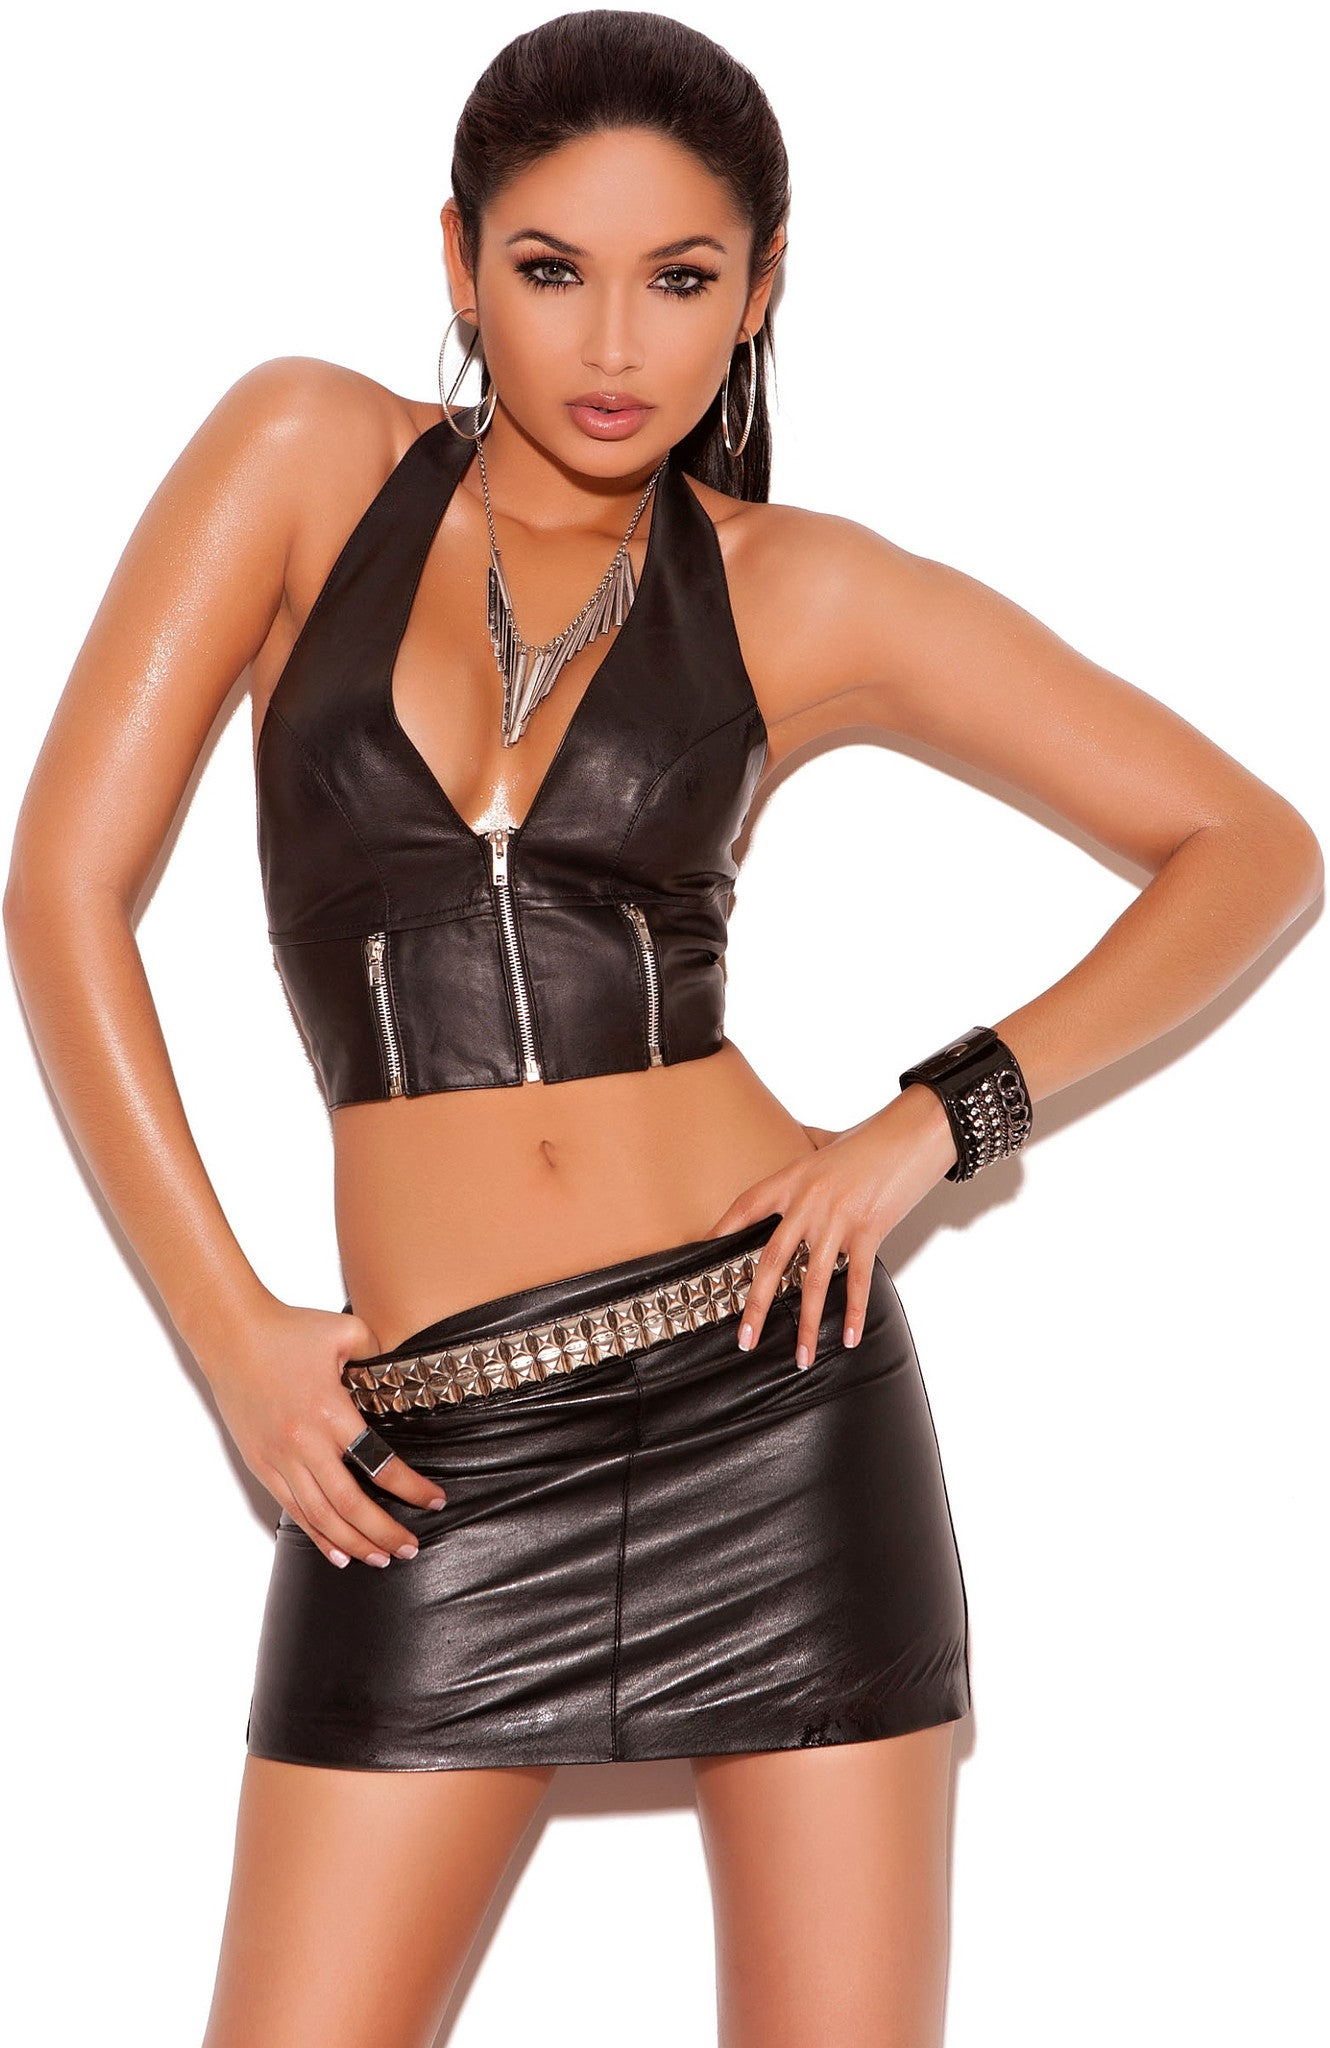 L4113 Leather top - Sexylingerieland  - 1